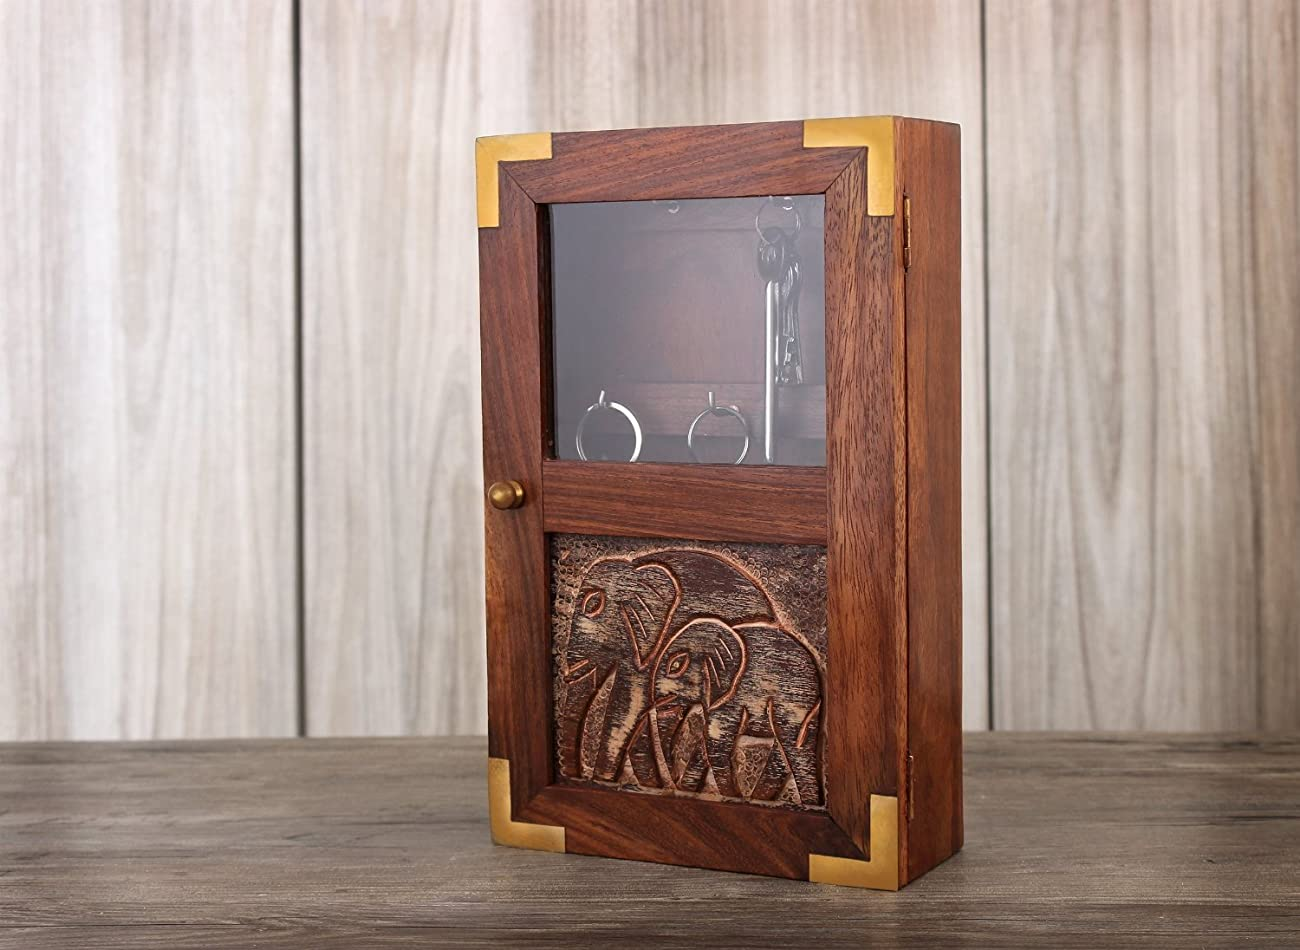 Handmade Decorative Wooden Wall Mounted Key Cabinet with Glass Panel Door & Elephant Carvings 3